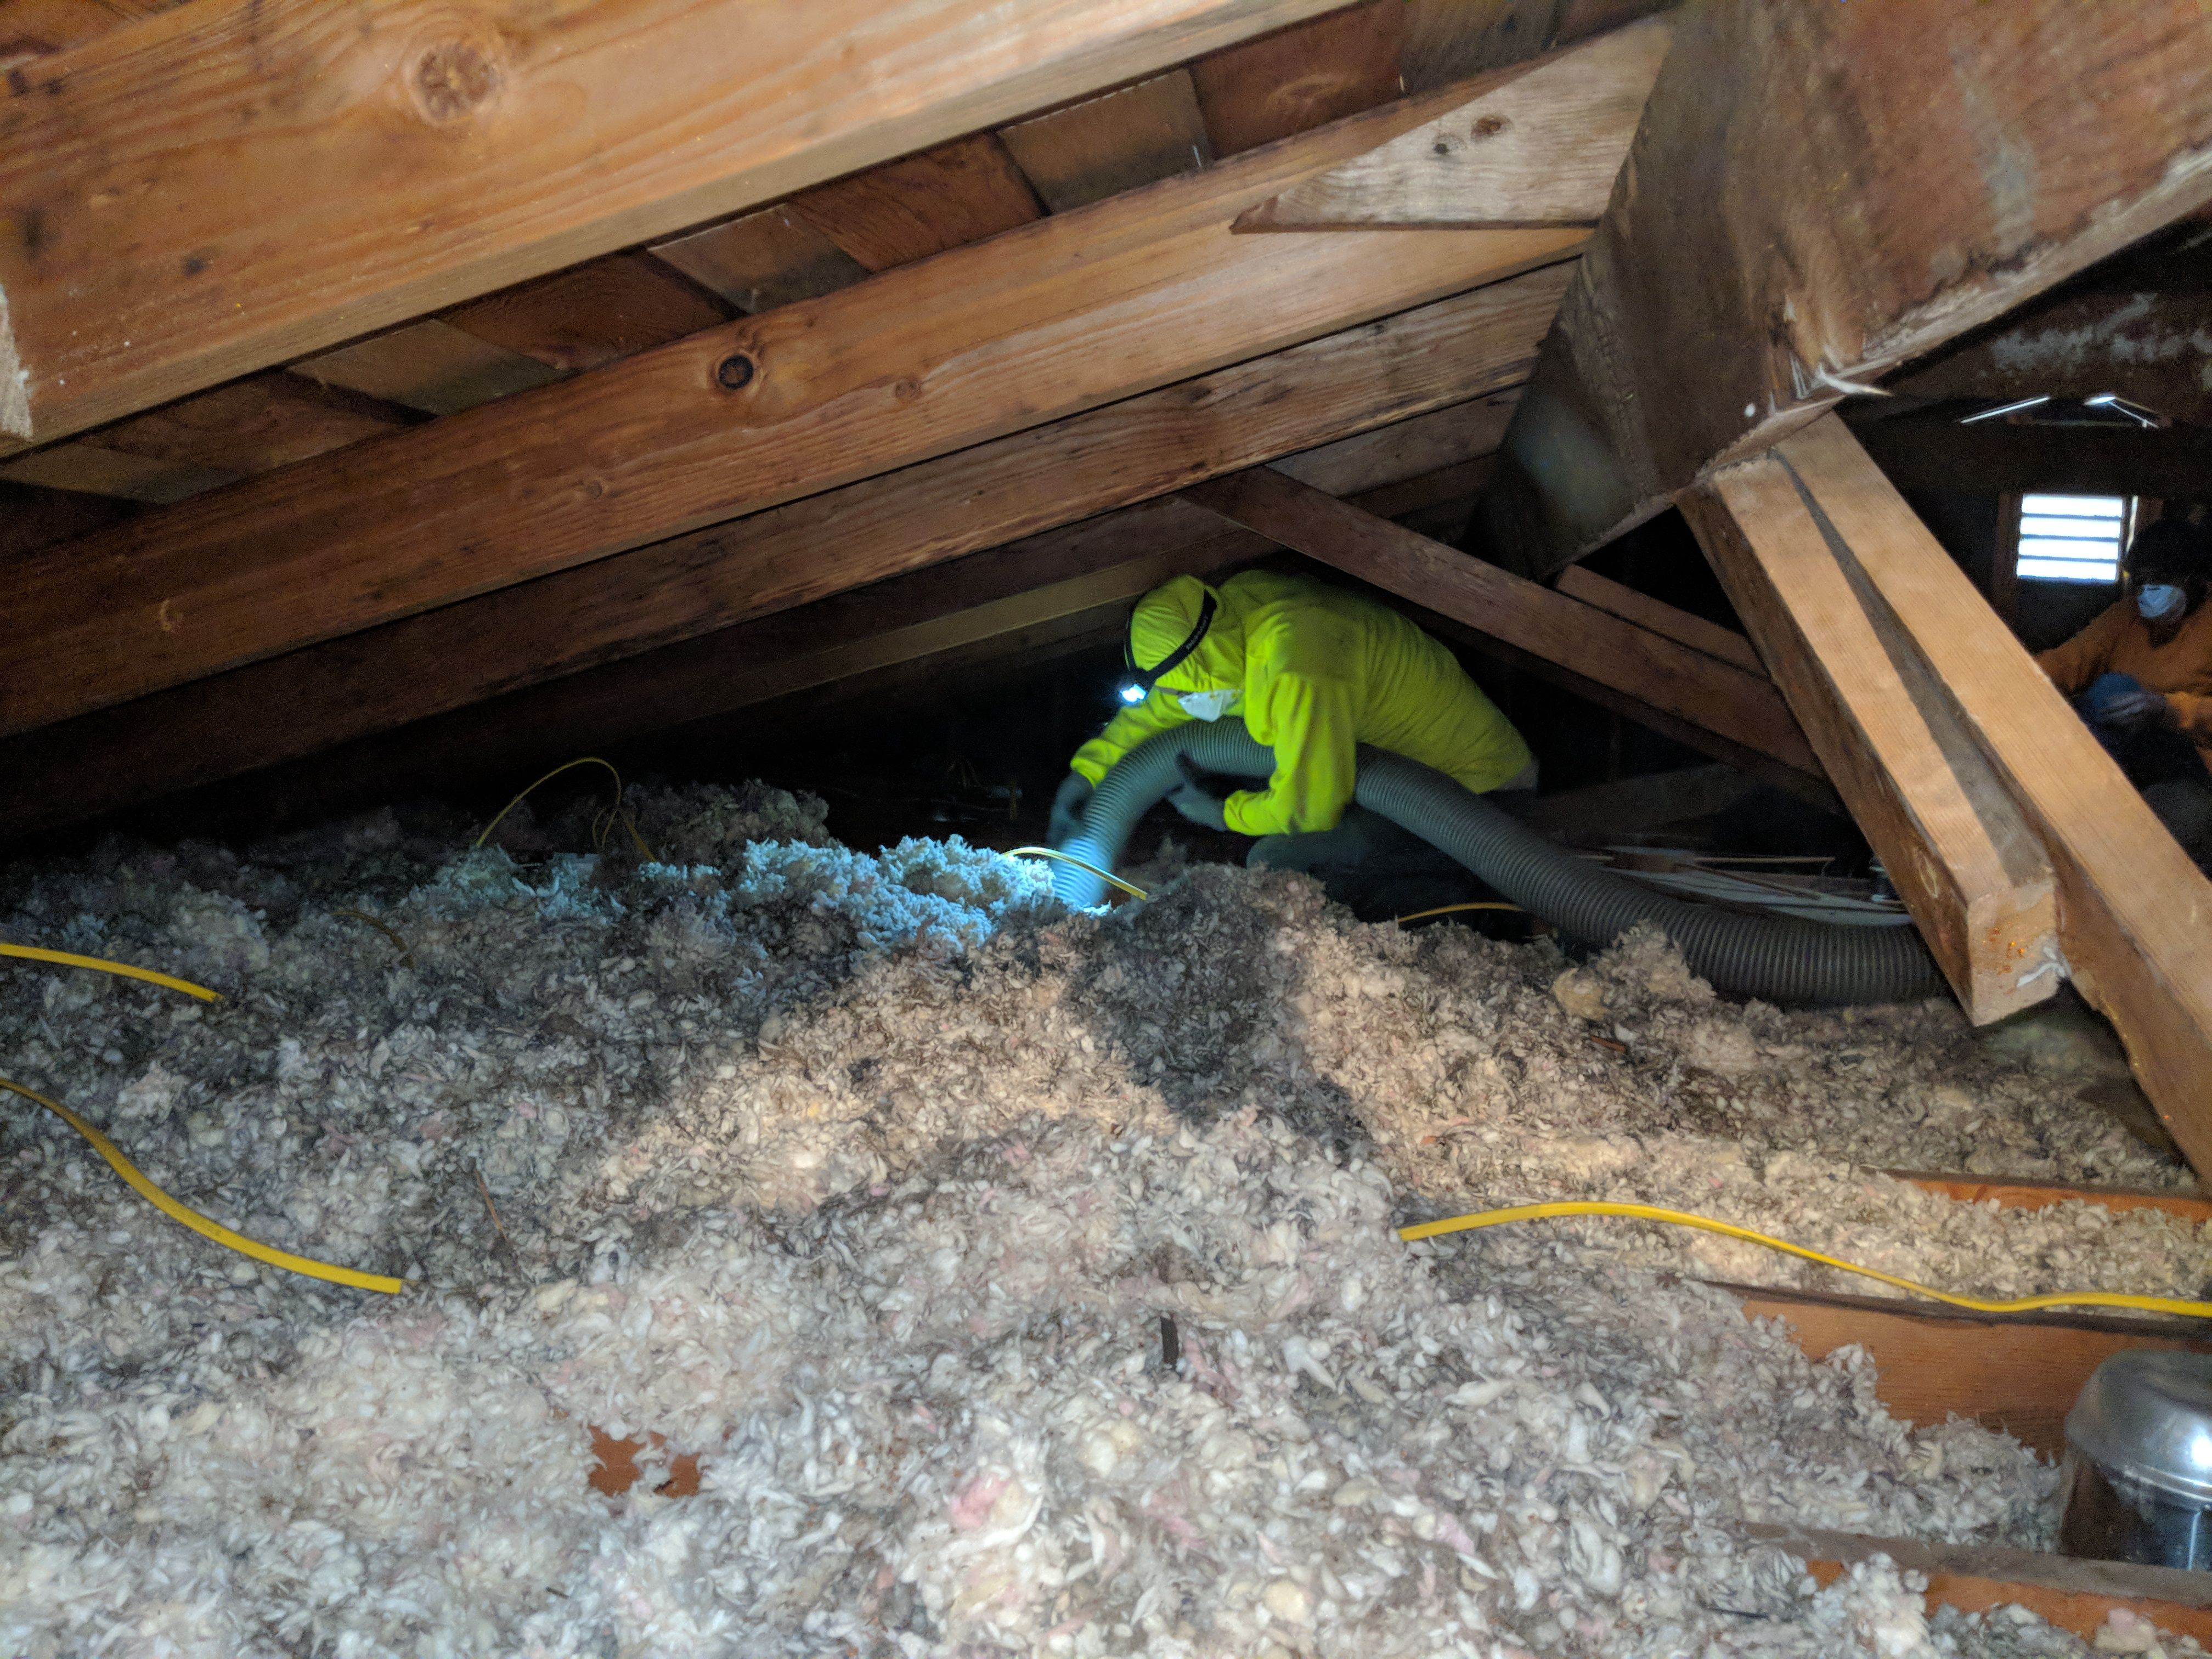 Attic Cleaning Attic Insulation Removal Insulation Removal Blown In Insulation